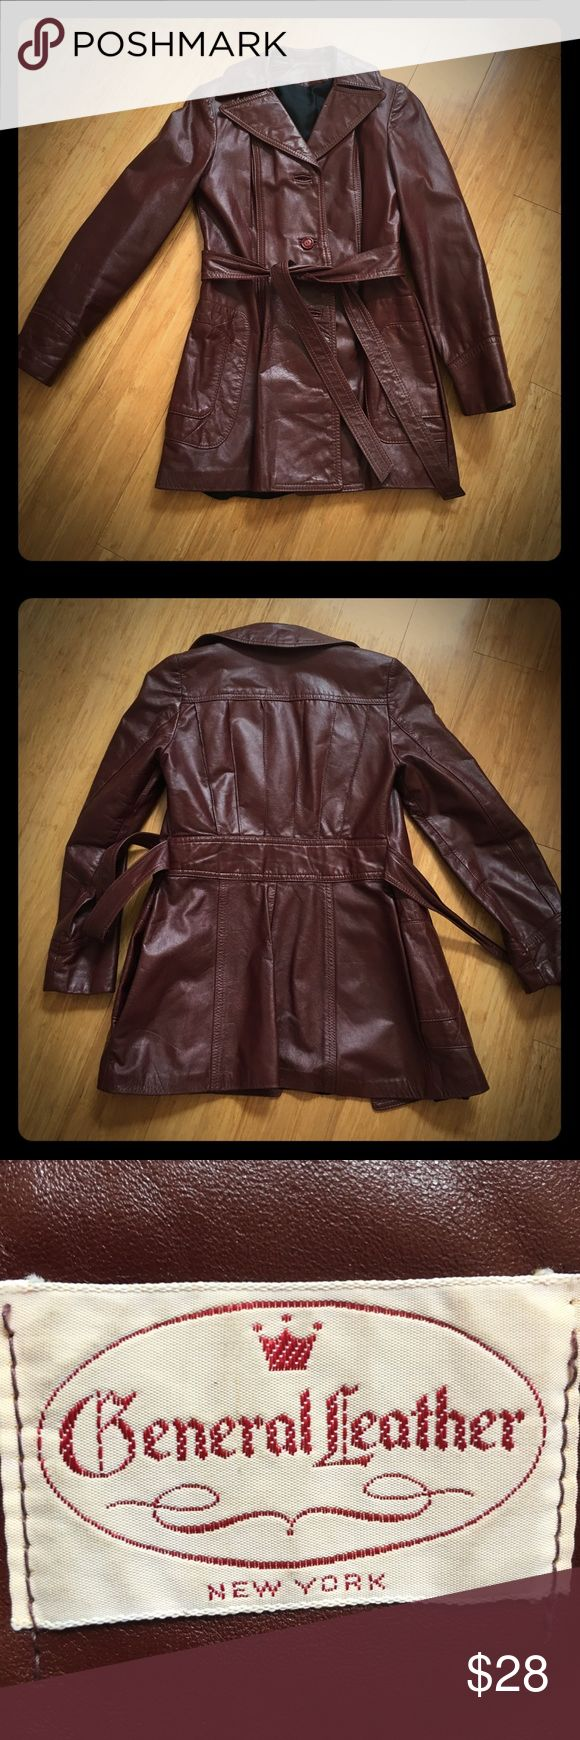 """Super Great vintage condition real leather jacket Awesome vintage leather jacket by General Leather, beautiful burgundy color with attached belt, piping on back, pockets, fully lined and lining all intact, very good wearable condition, if it was a bit bigger I would keep it!! See pic for chest measurement, about 34"""" pit to pit, I would say a size small - awesome piece for your collection -amazing!! General Leather Jackets & Coats Blazers"""